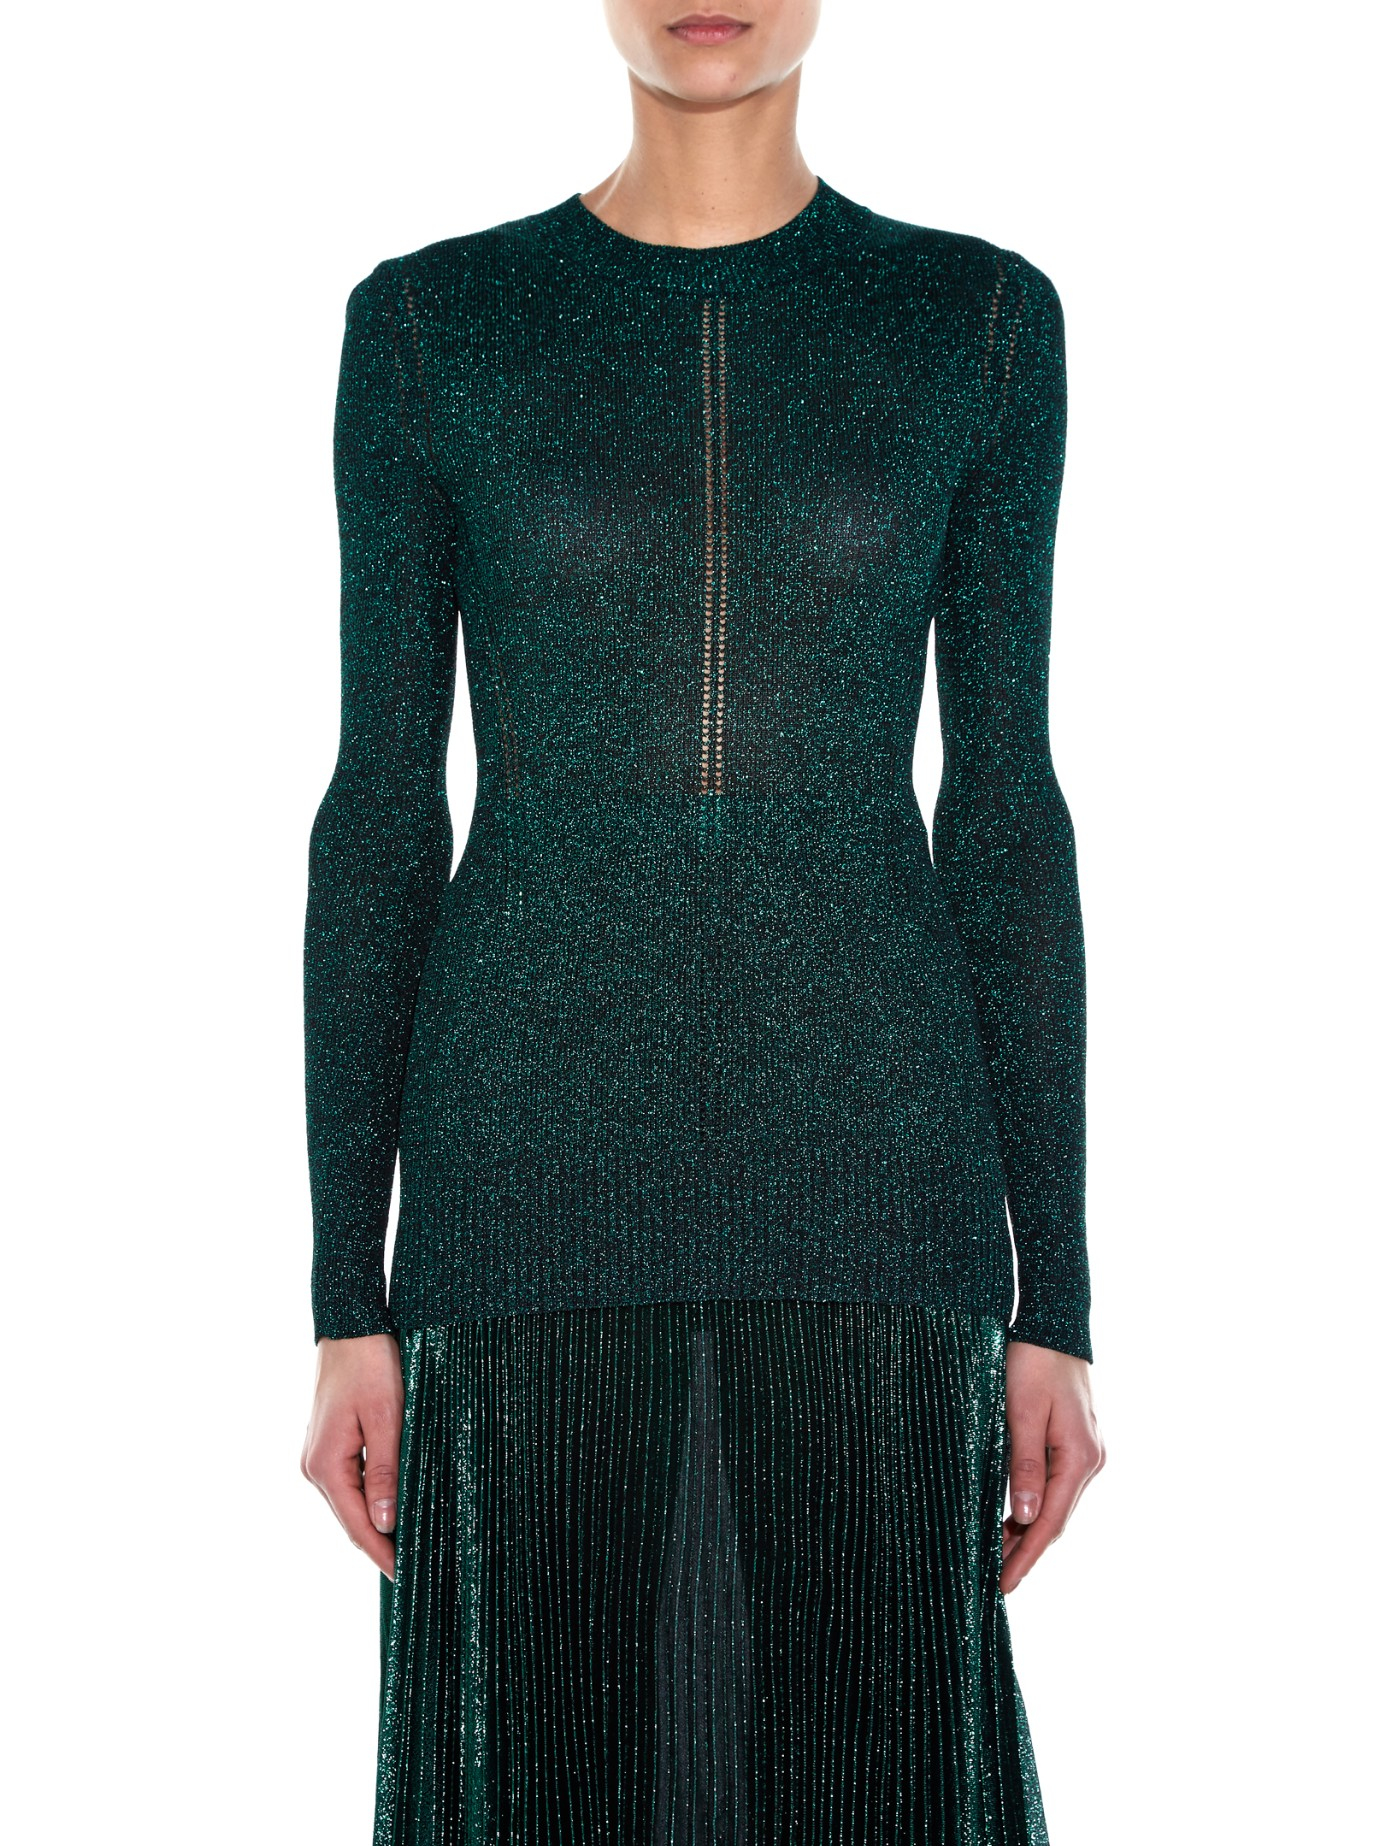 Lowest Price Christopher Kane metallic jumper Multi Coloured Sale New Styles Outlet Clearance Free Shipping Fast Delivery 0ccCwpSg9